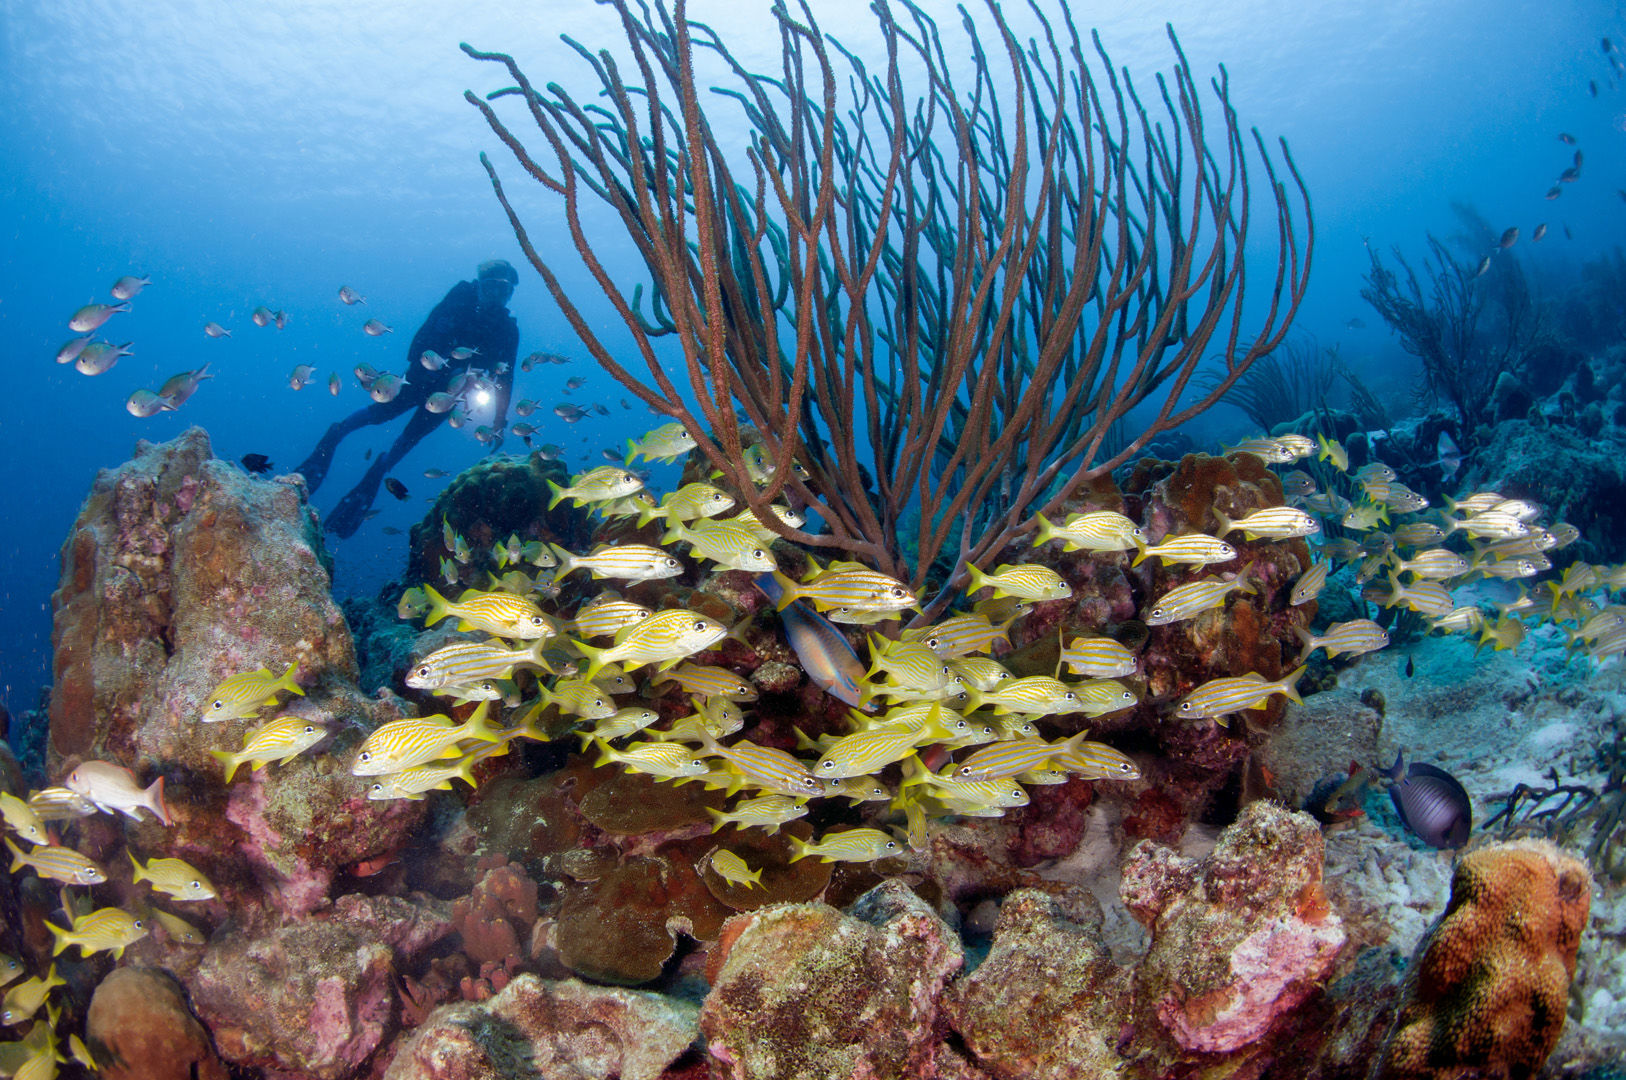 Diver exploring a reef full of life in Bonaire